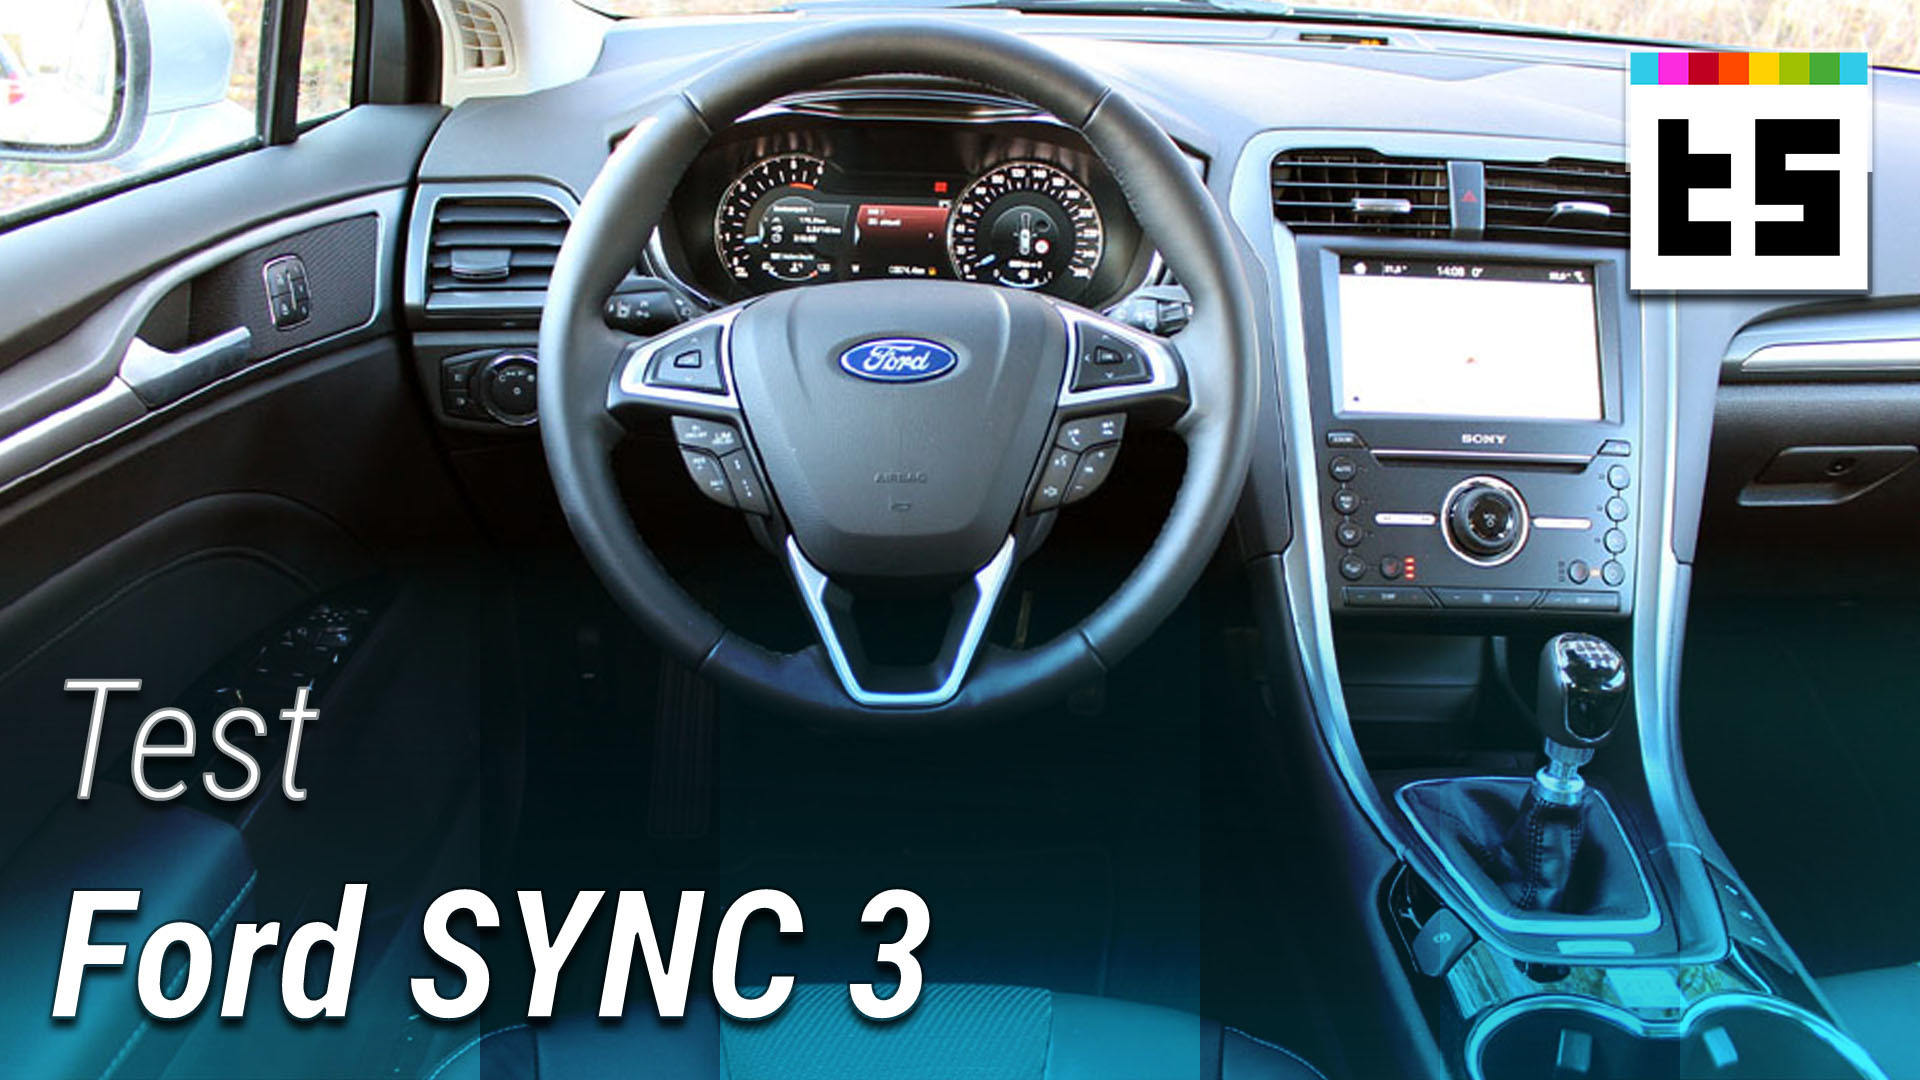 infotainment im test ford sync3 heise autos. Black Bedroom Furniture Sets. Home Design Ideas